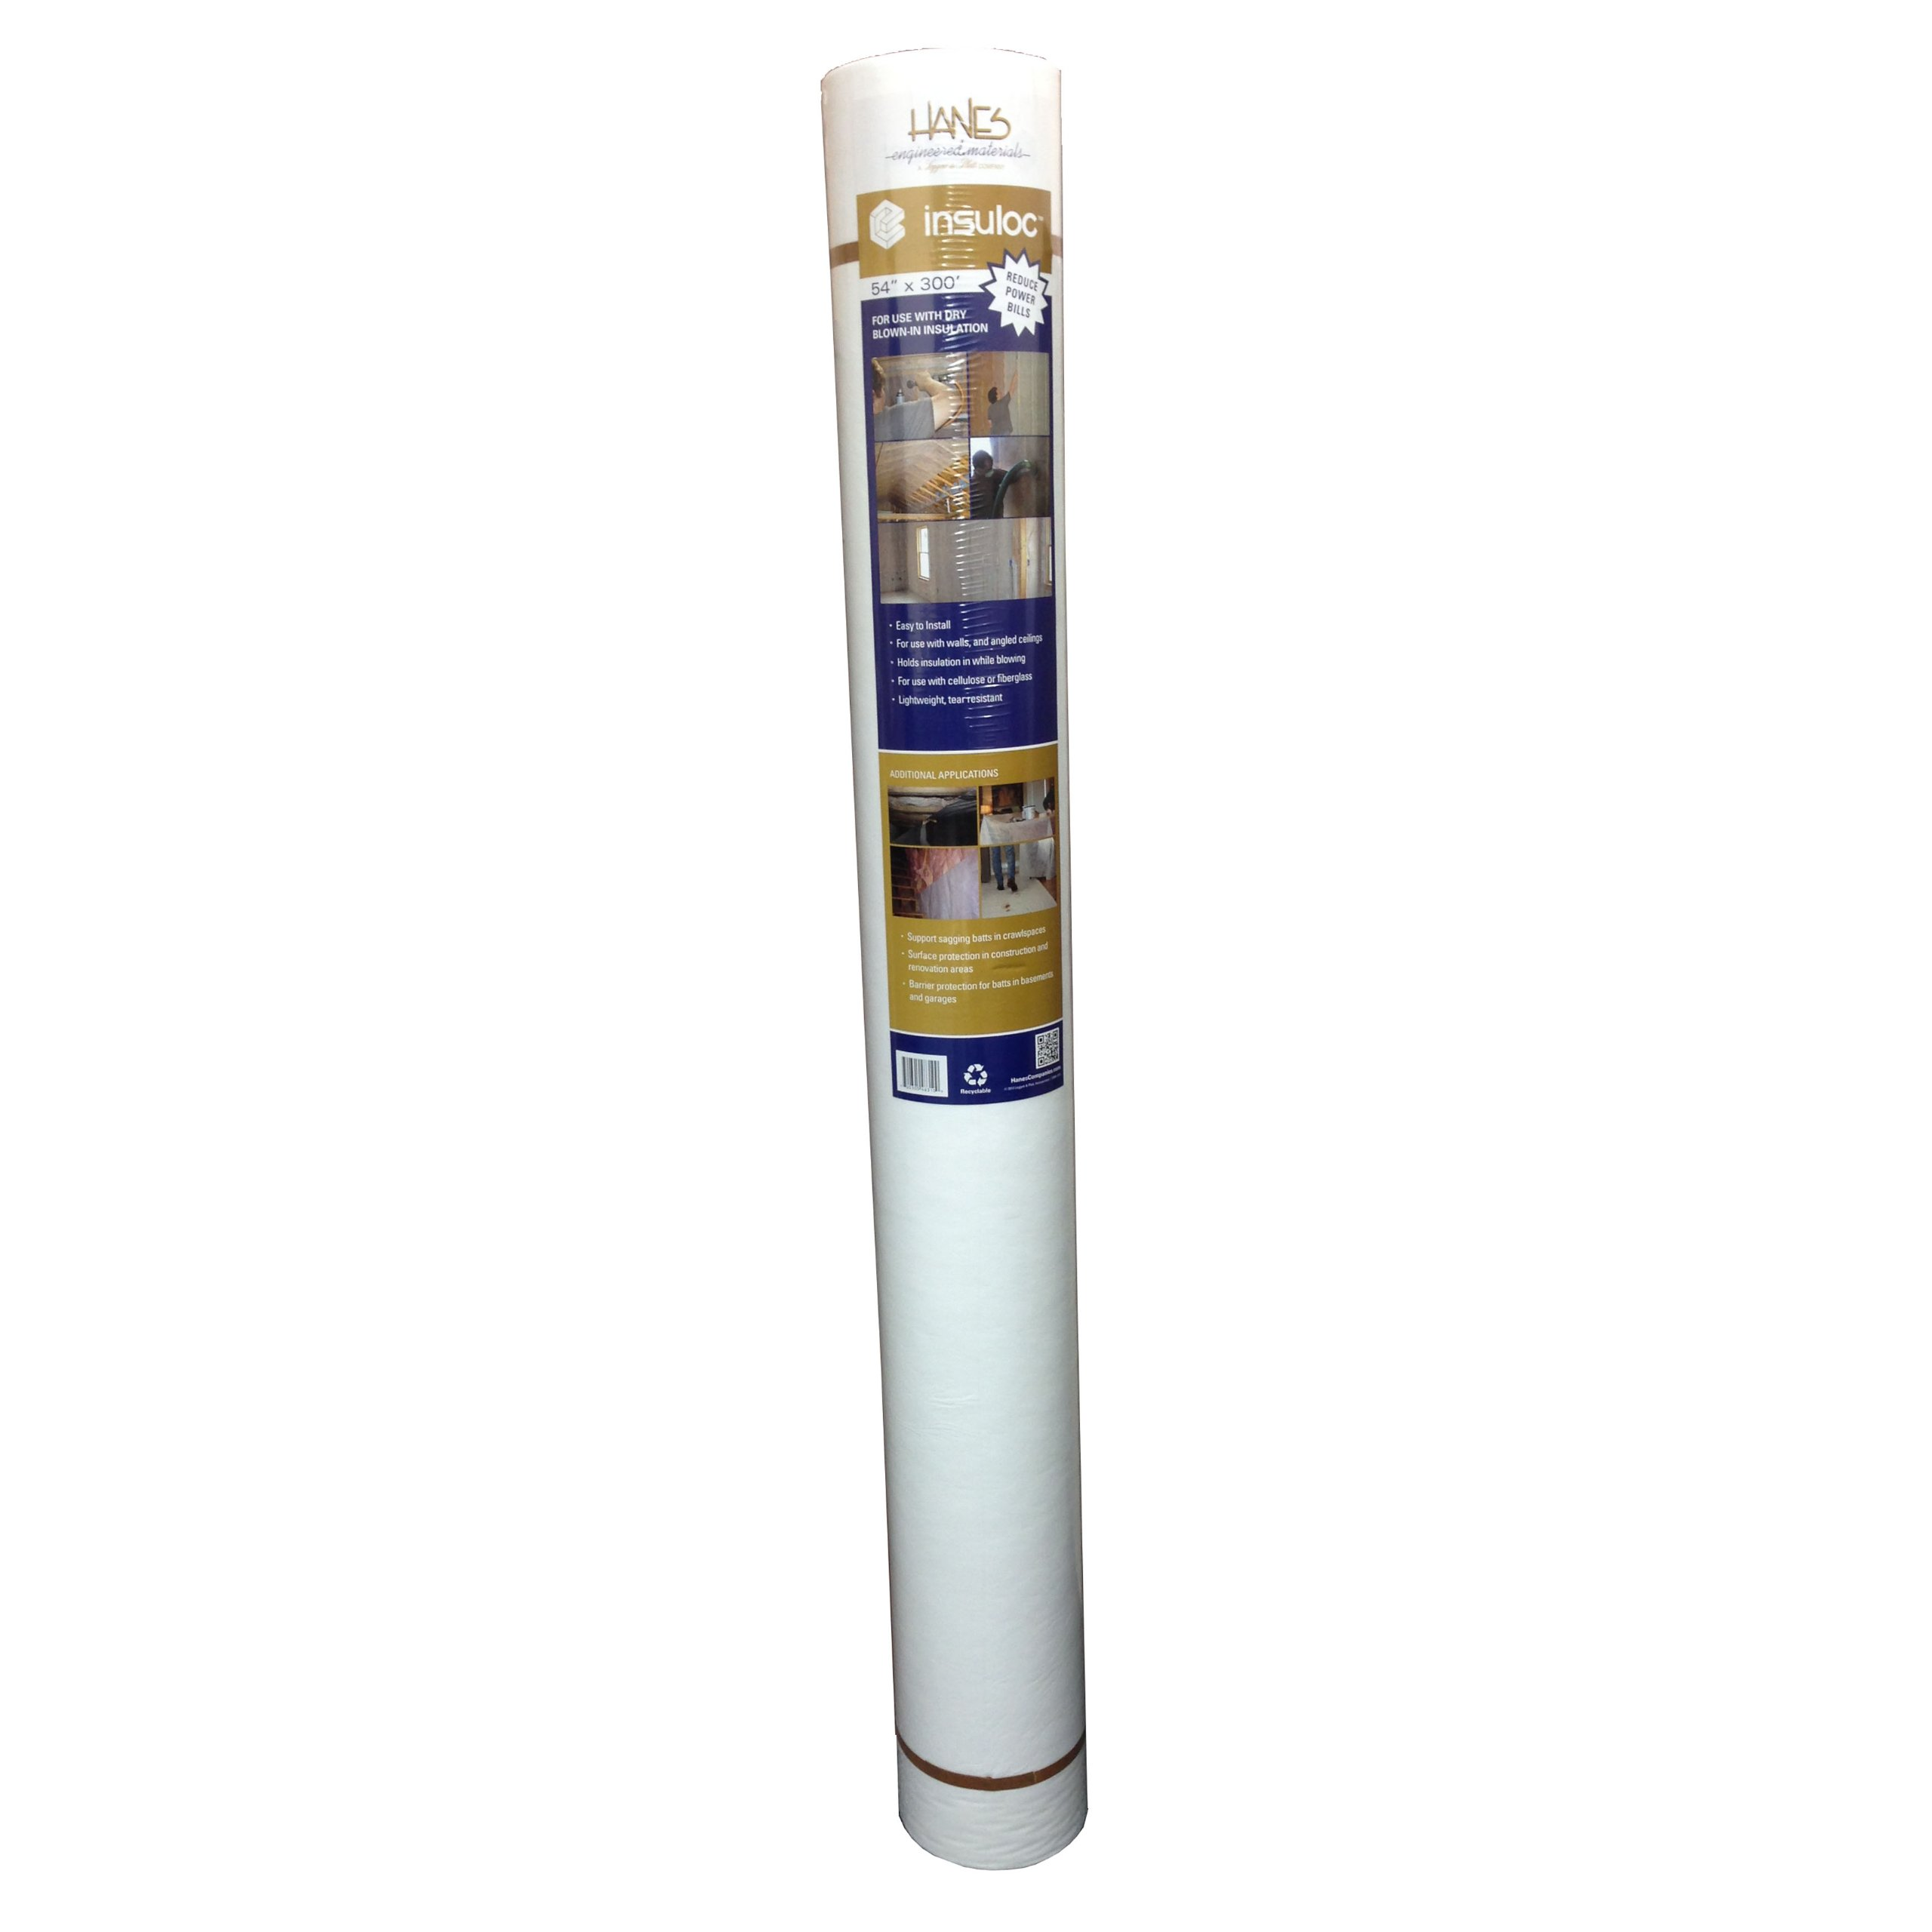 Hanes Geo Components 48311 Insuloc Wall and Ceiling Insulation Fabric, 4.5-Feet x 300-Feet by Hanes Geo Components